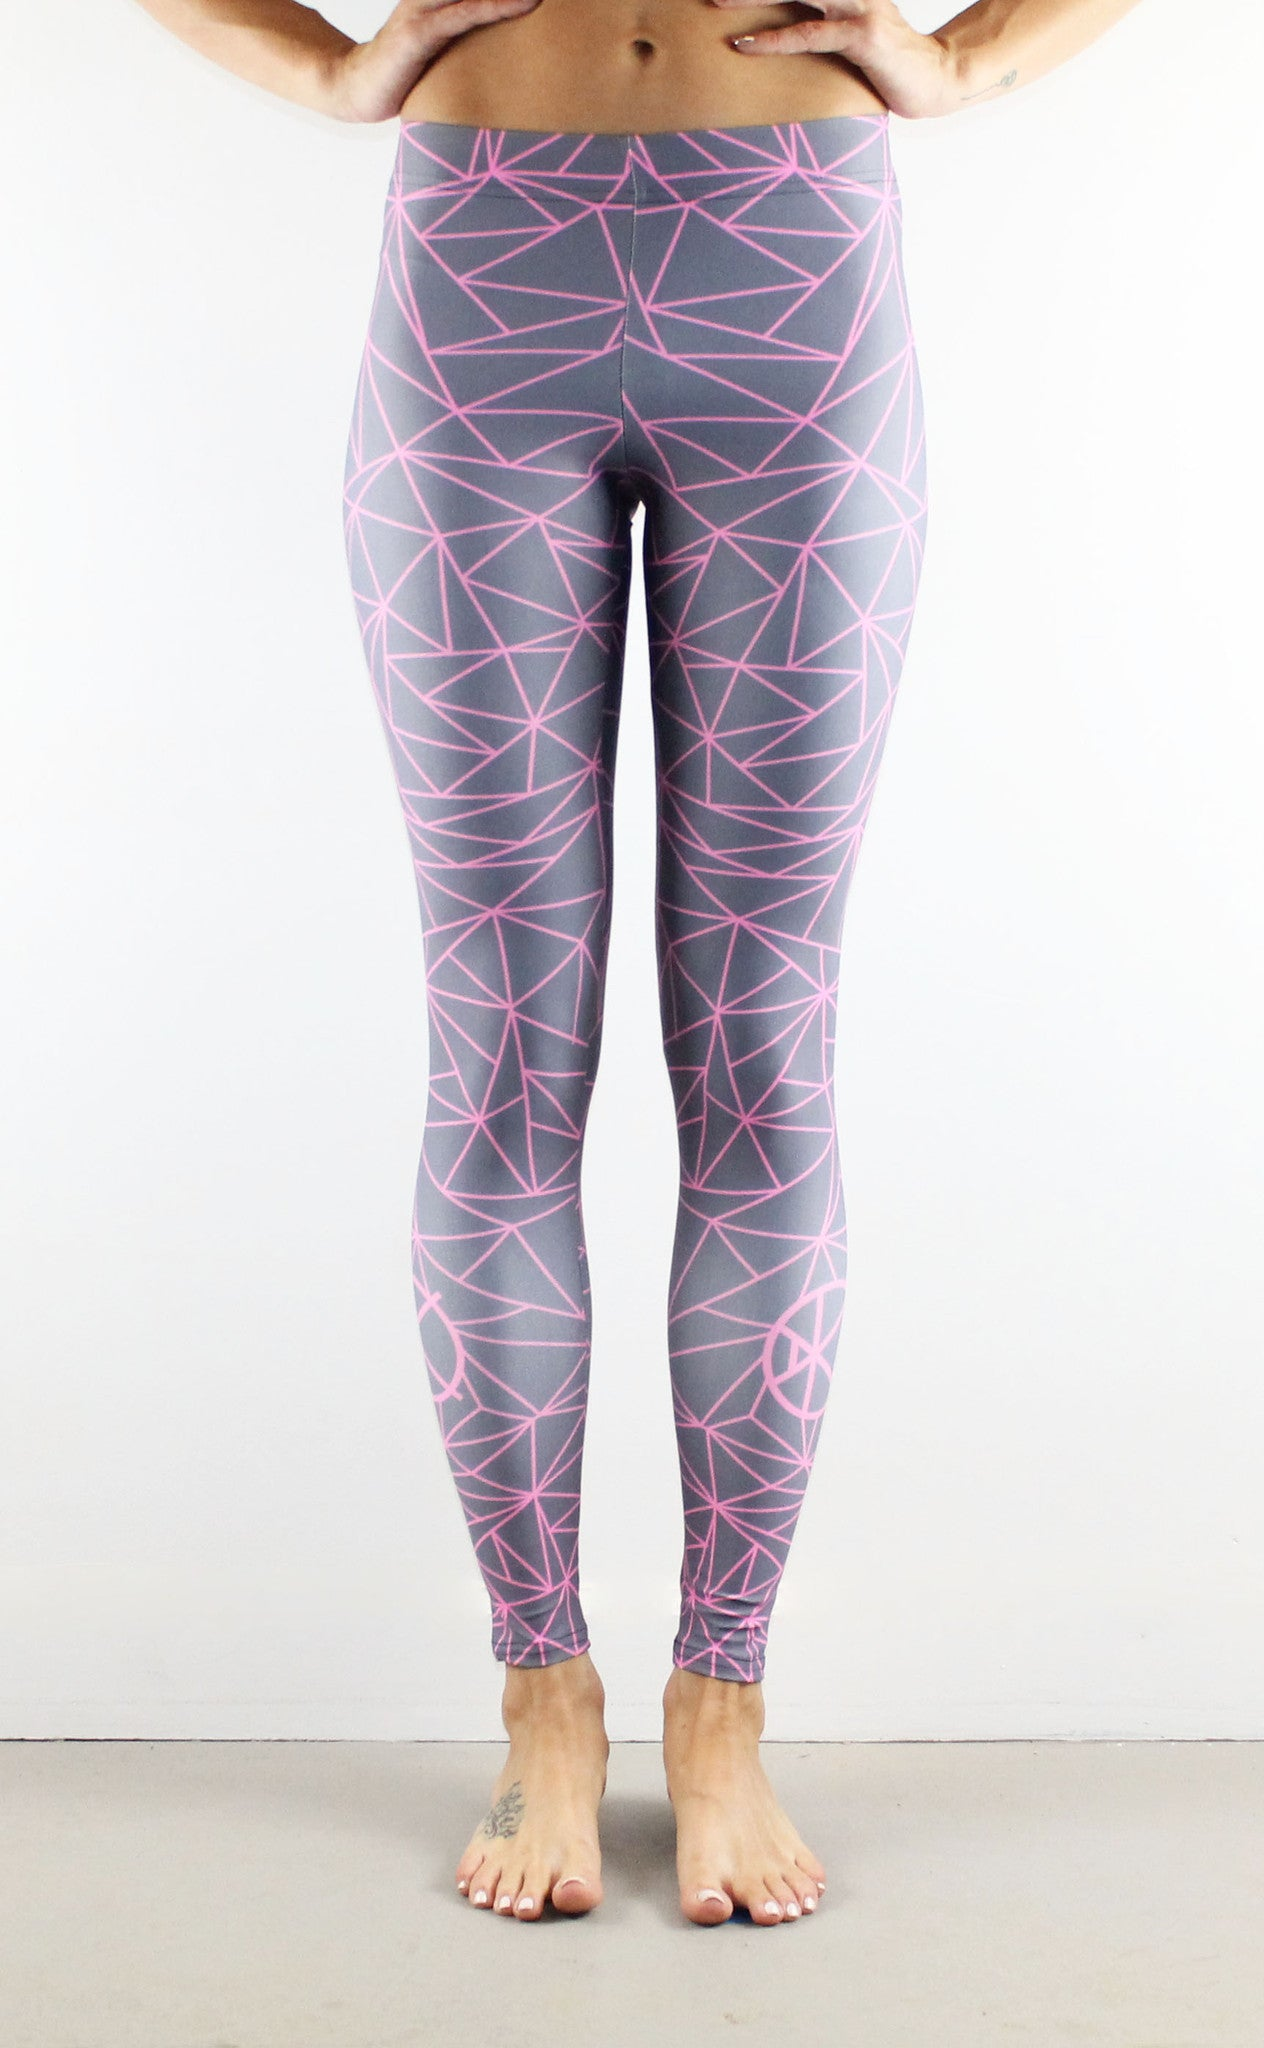 Fractal Leggings // Pink on Grey